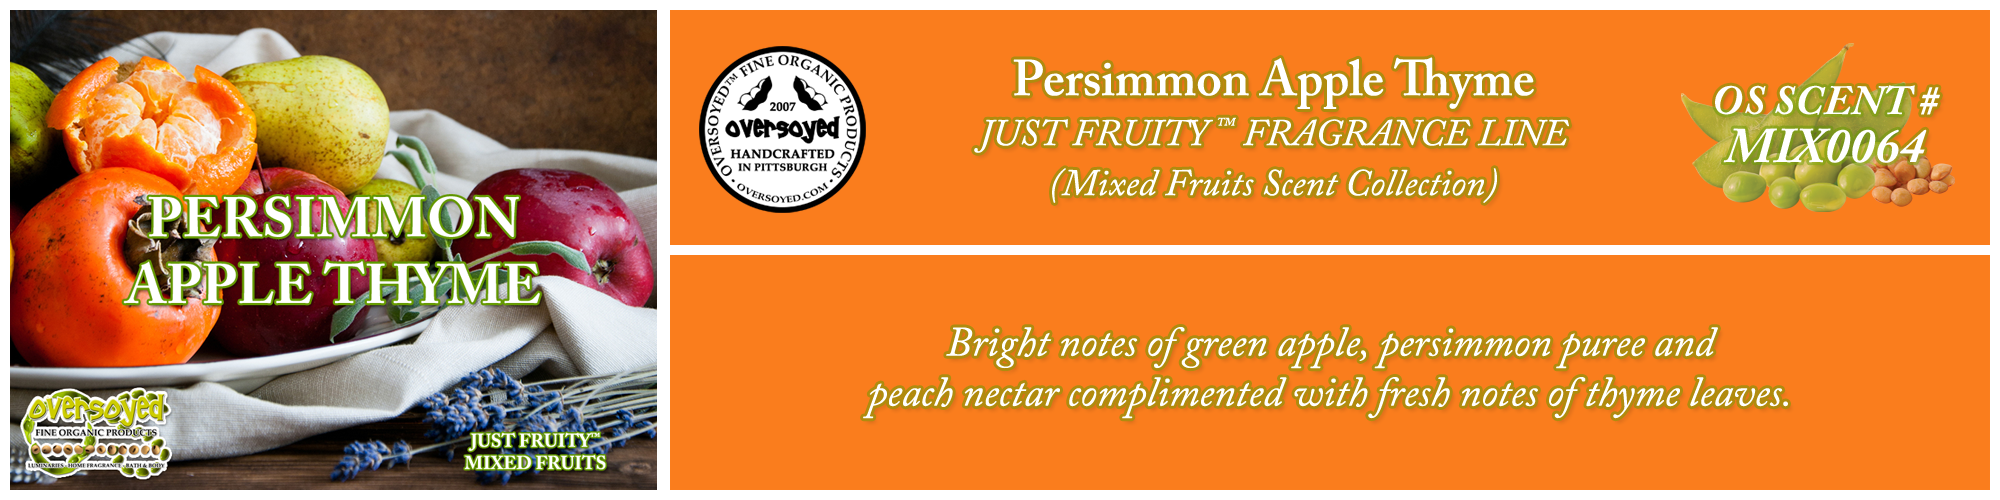 Persimmon Apple Thyme Handcrafted Products Collection